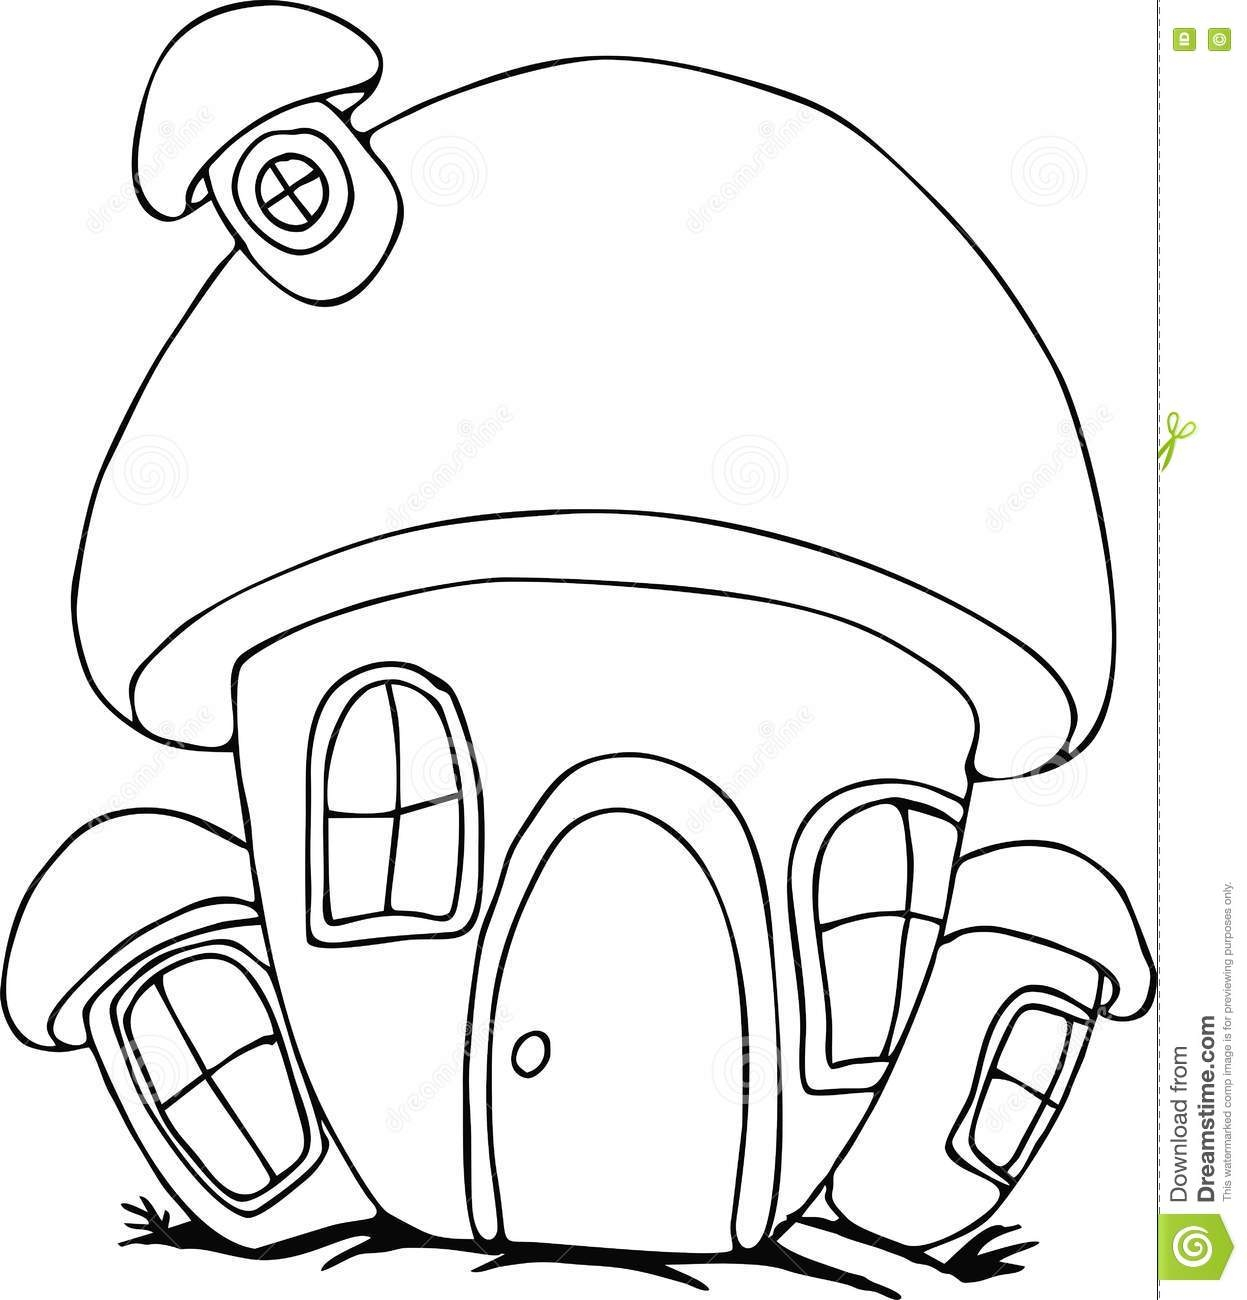 Loud House Coloring Pages - Doodle Mushroom House Cartoon Stock Vector Image